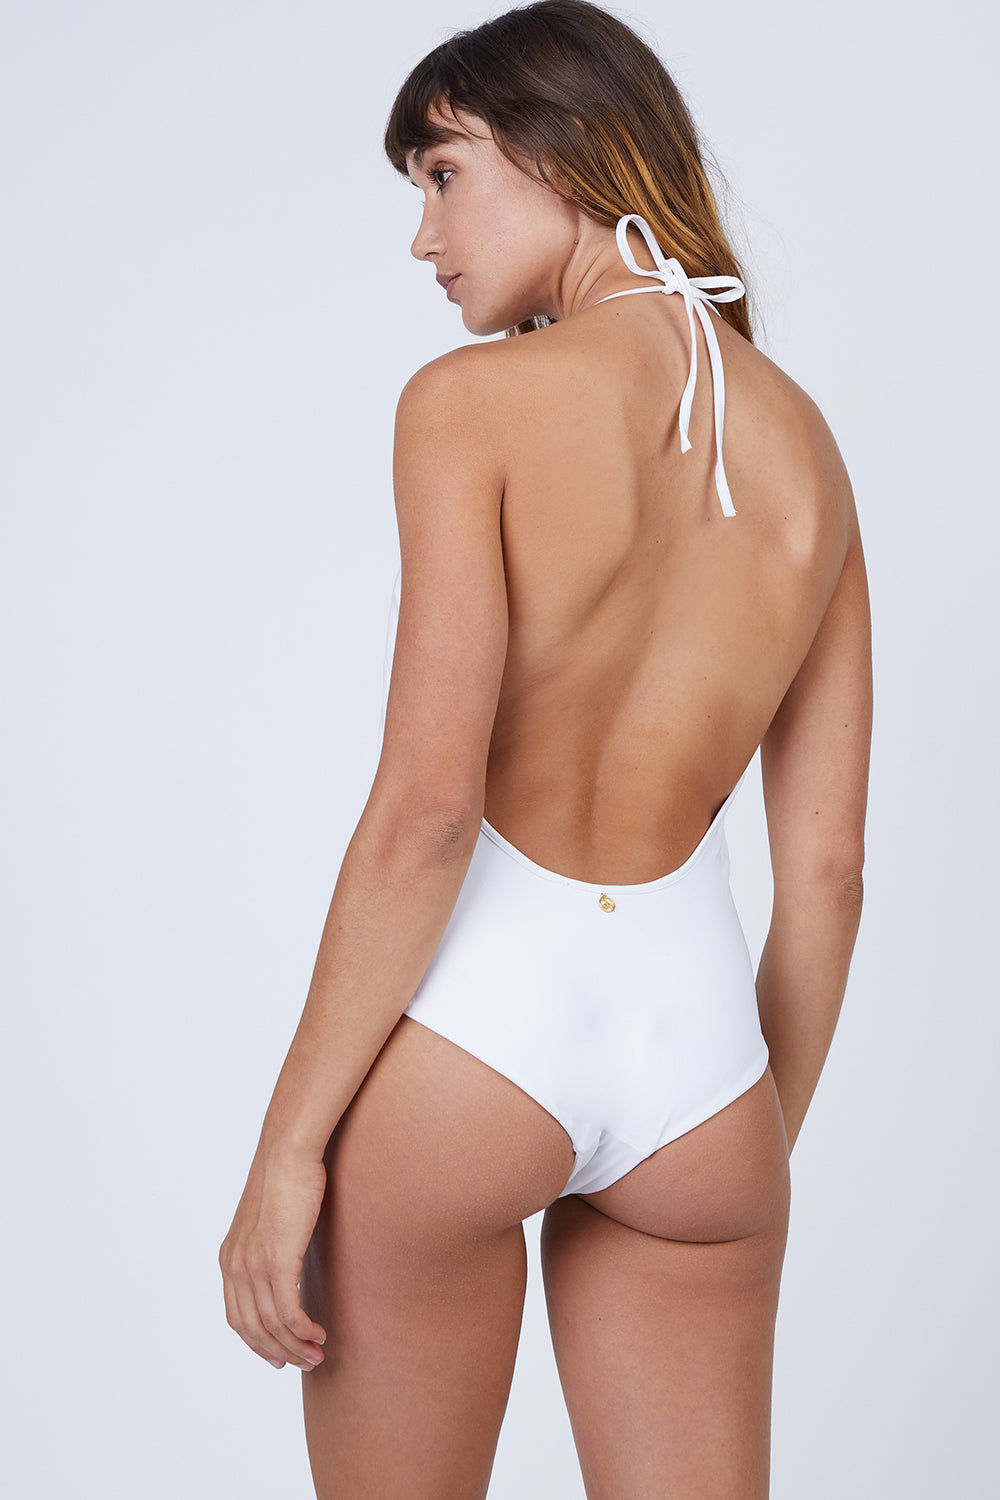 AMITA NAITHANI Floral Crush Plunging One Piece Swimsuit - White & Tea Rose One Piece   White & Tea Rose  Amita Naithani Floral Crush Plunging One Piece Swimsuit - White W/ Tearose. Features:  Plunging neckline Hand wash Front View